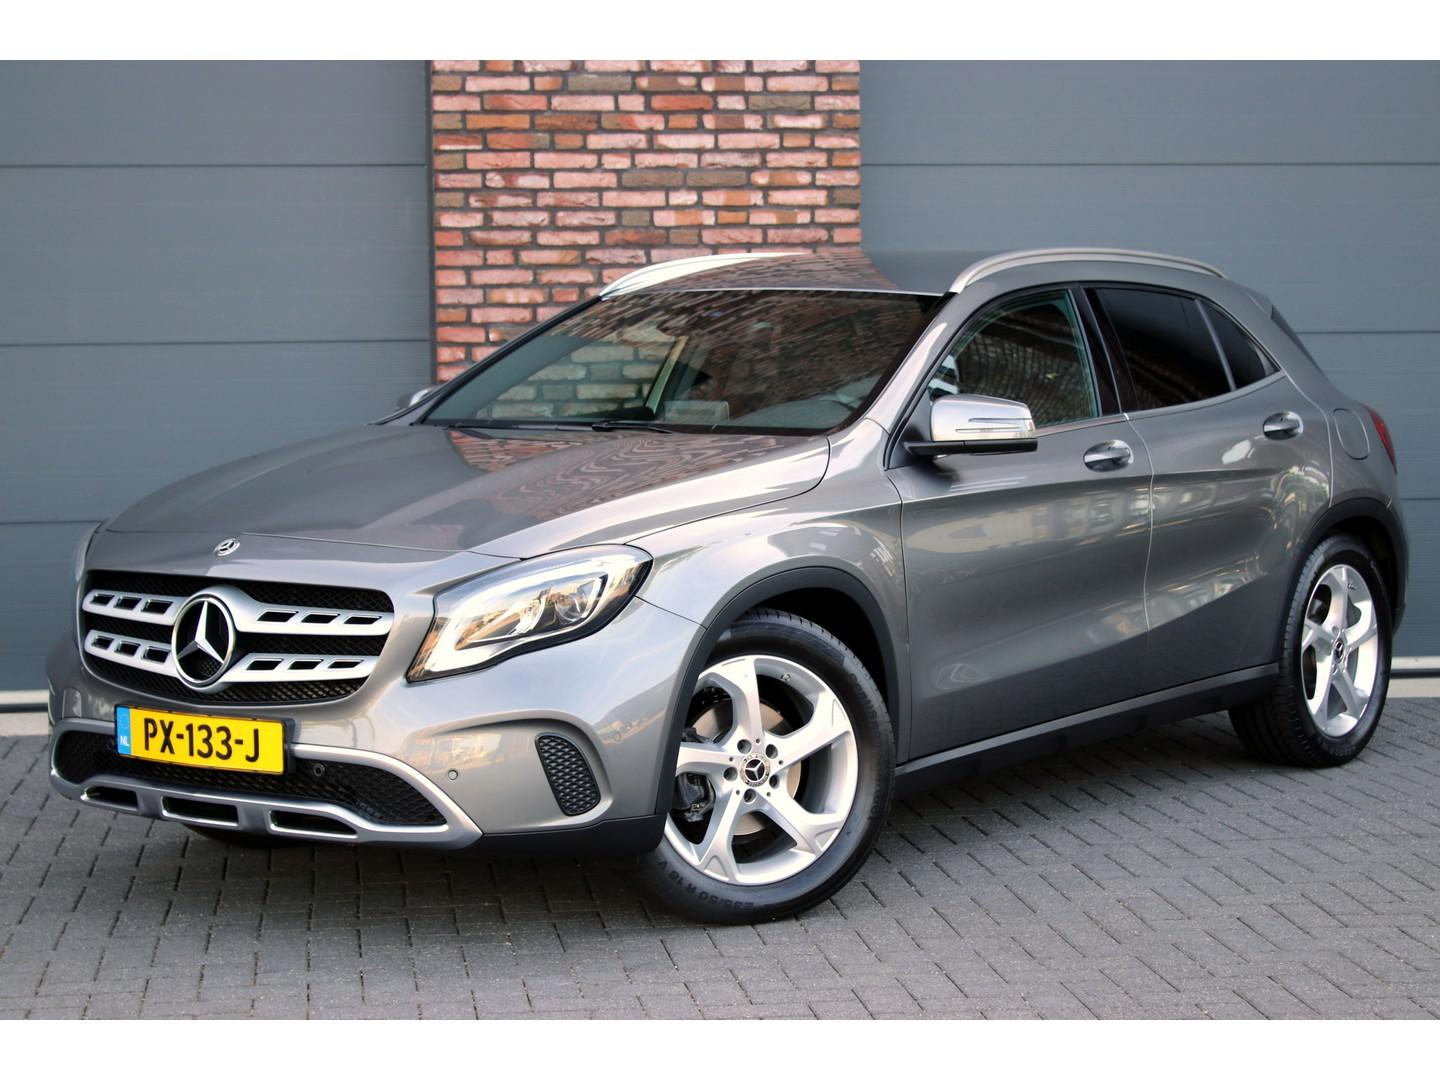 Mercedes-benz Gla-klasse 180 activity edition aut7, groot scherm navigatie, camera, afn. trekhaak, parkeer-assistent, led high perf., spiegelpakket, elek. achterklep, etc.